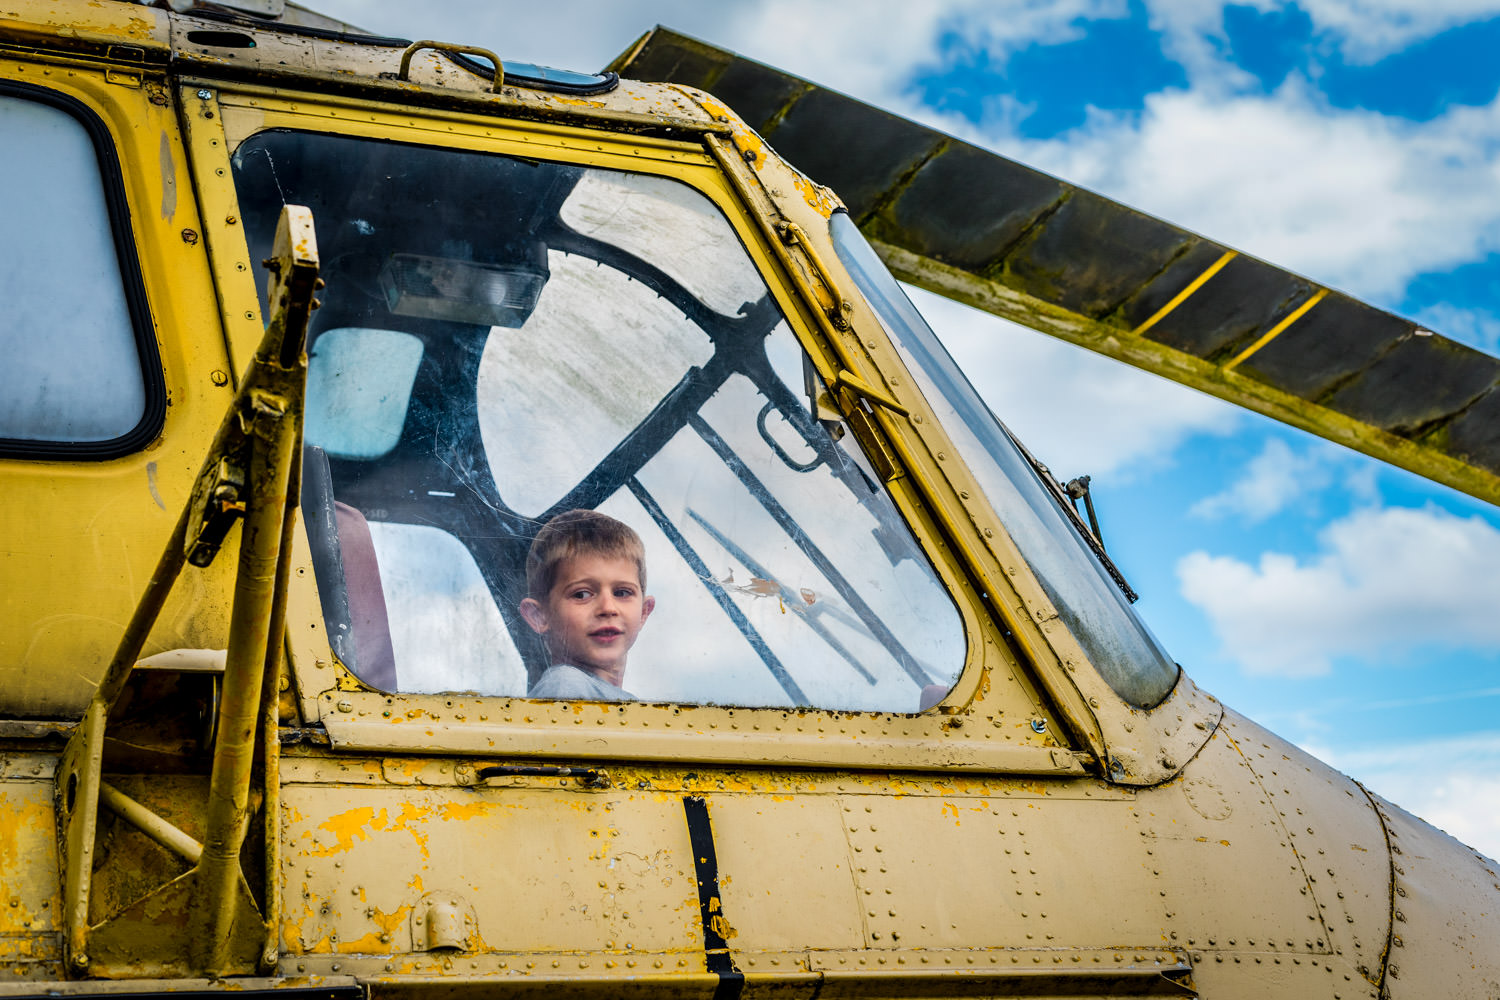 boy sat in pilots seat of yellow helicopter